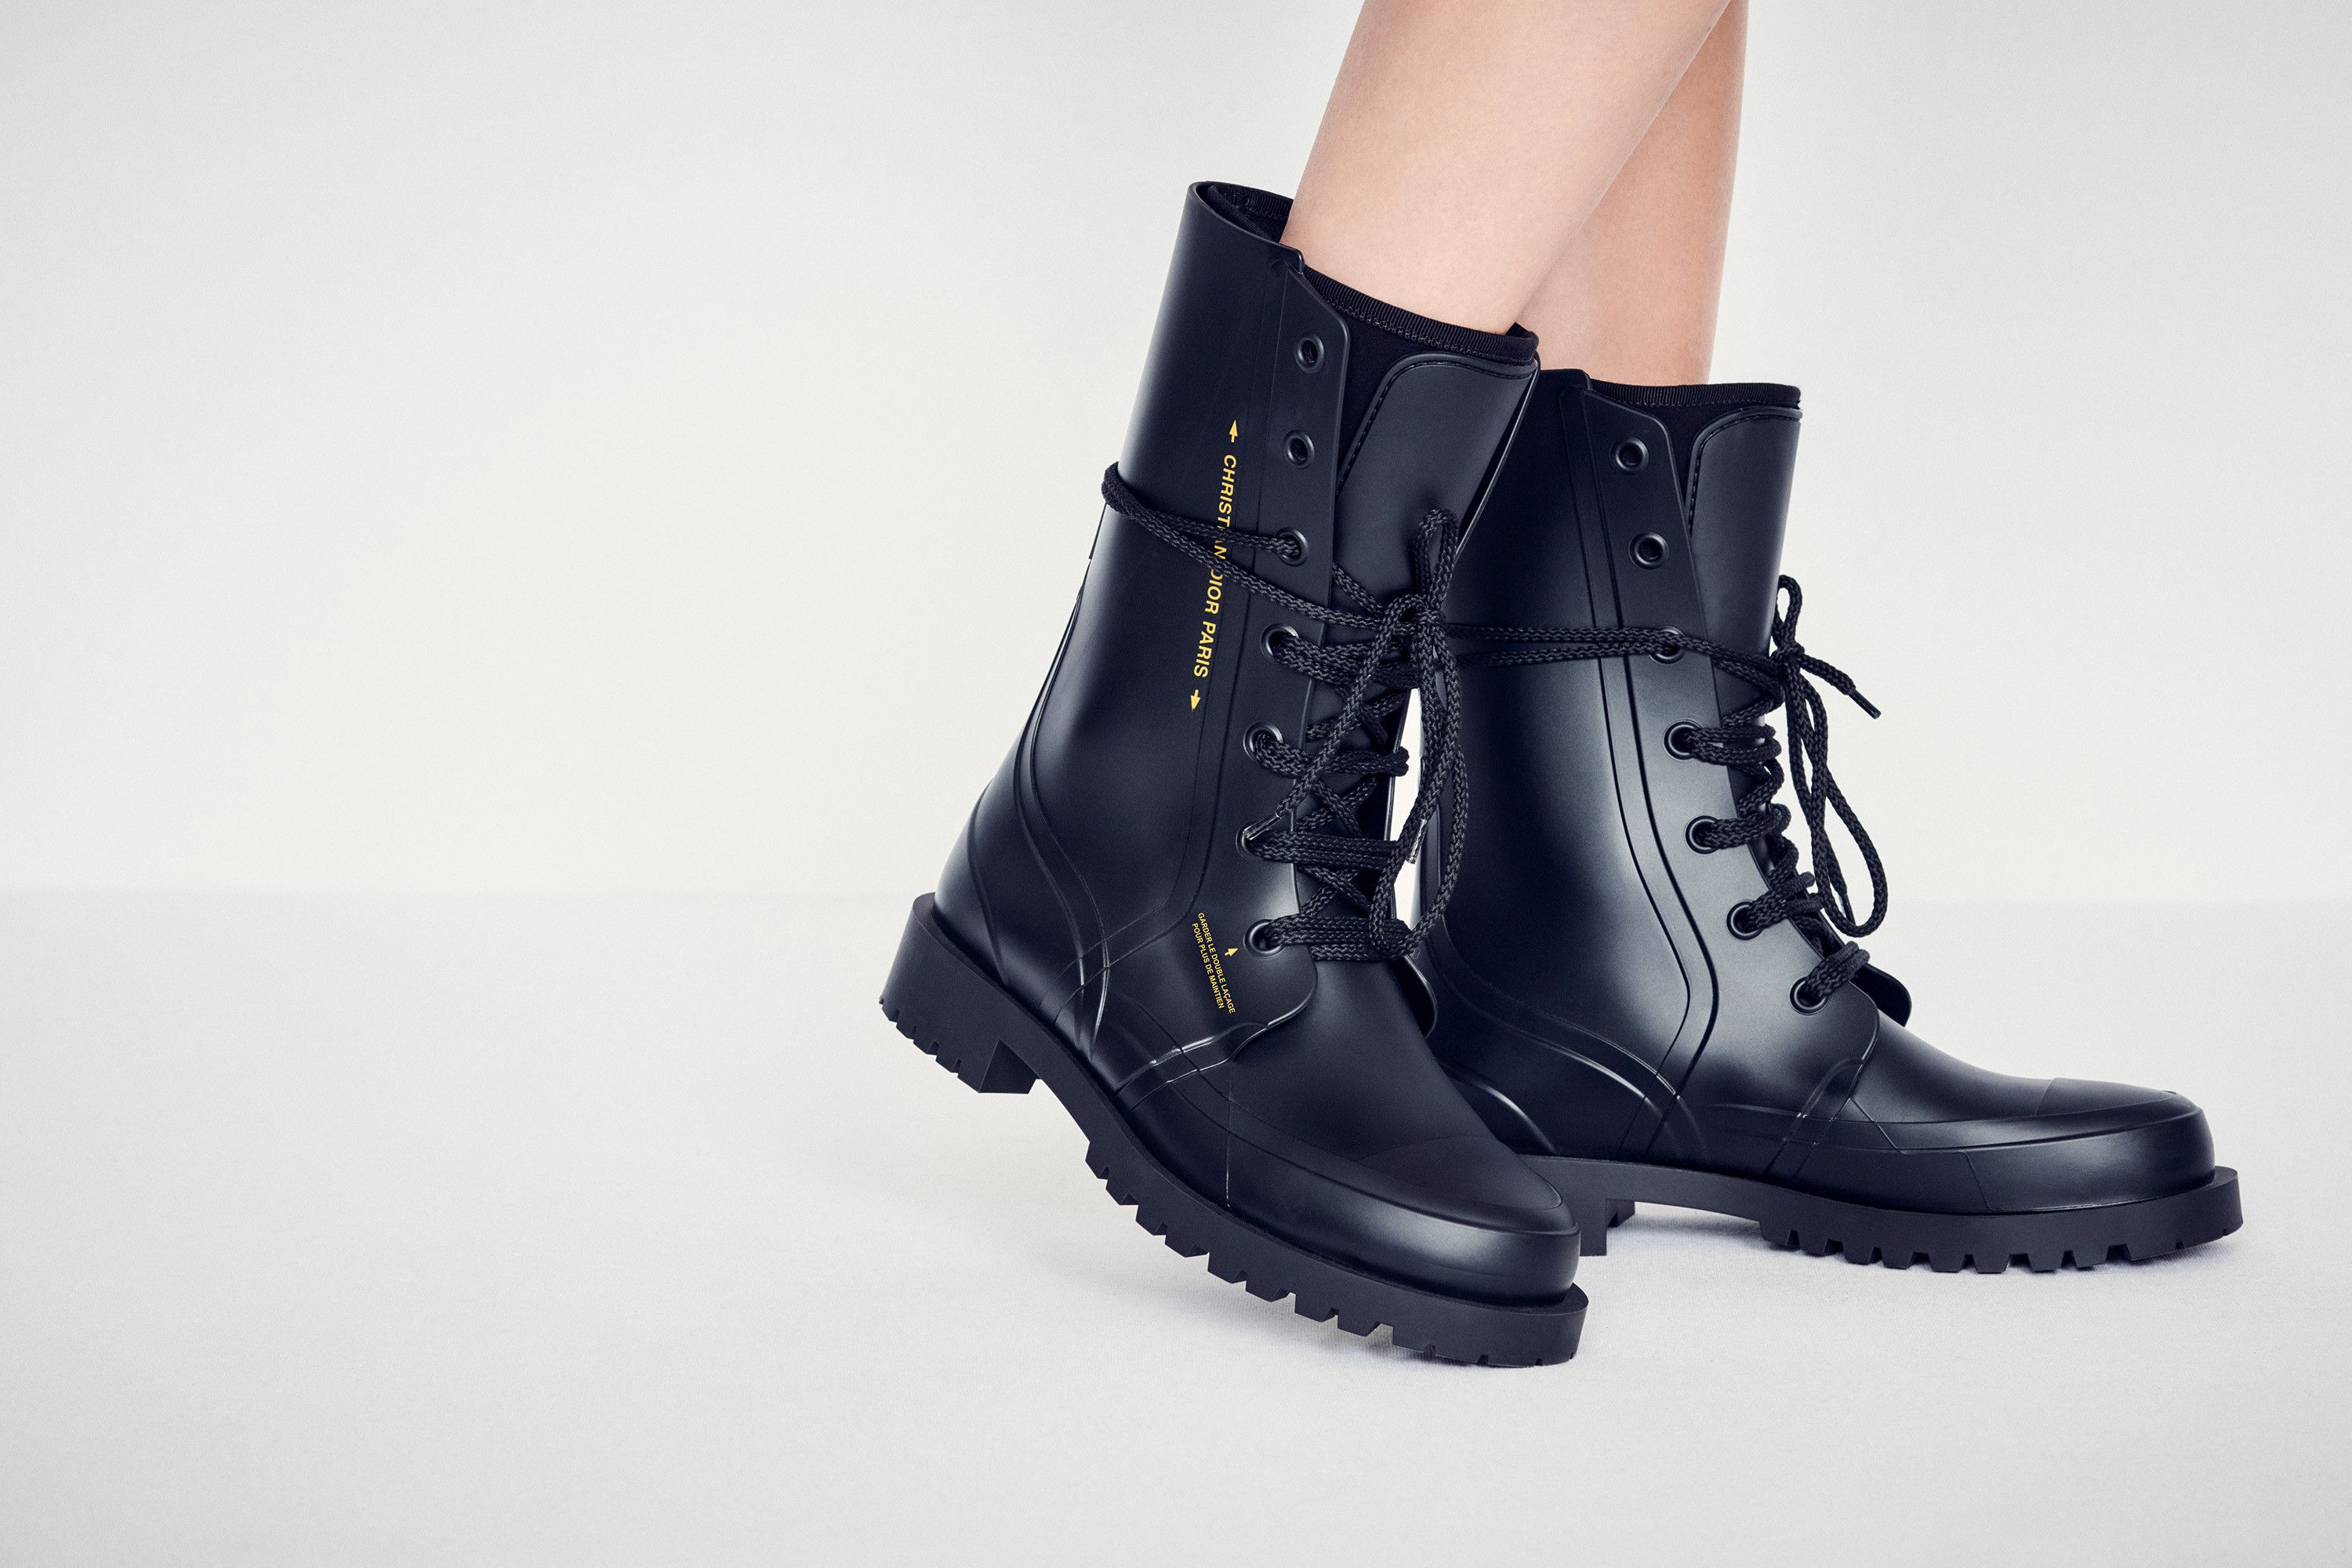 DIOR | Dior boots, Boots, Boot shoes women